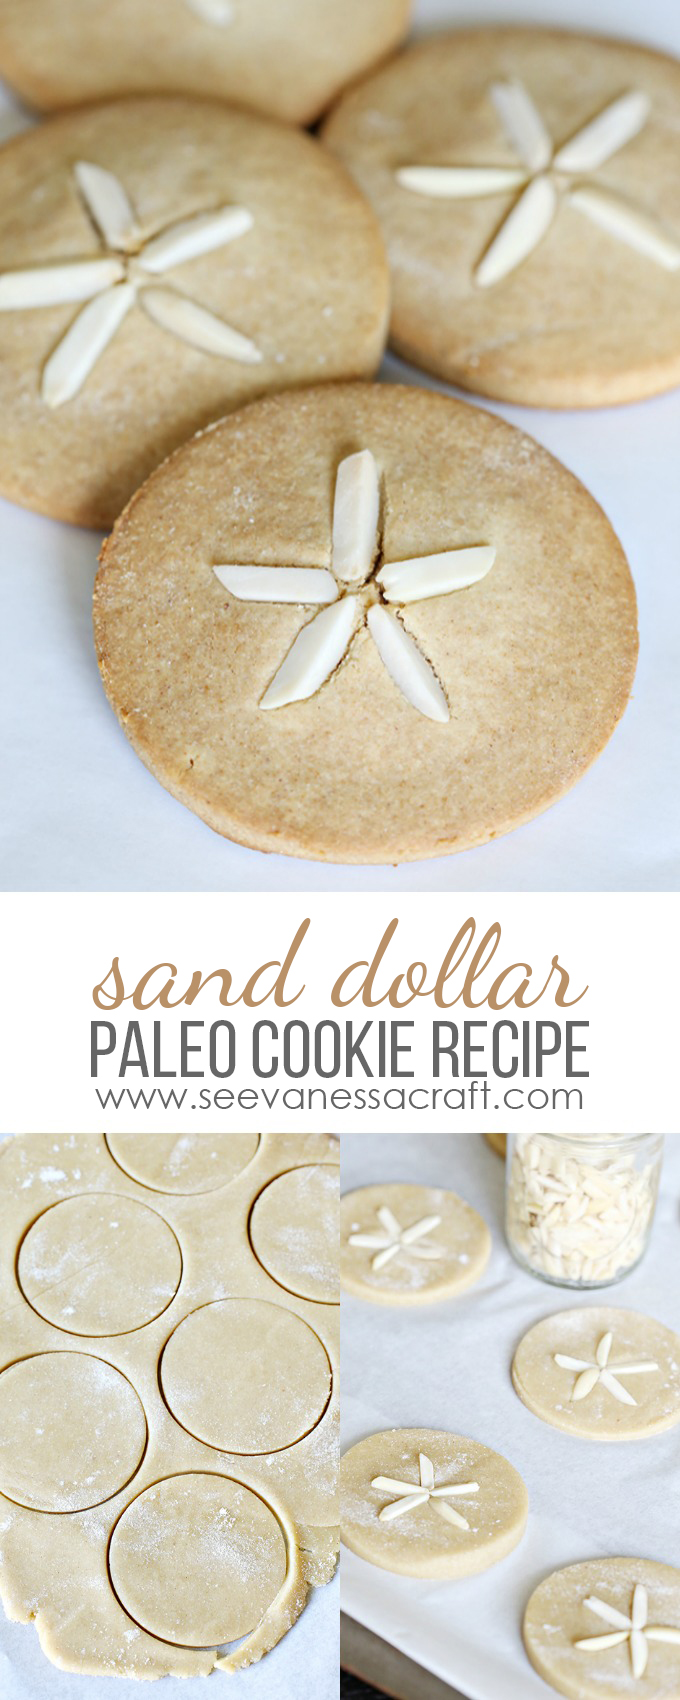 Sand Dollar Cookie Recipe copy